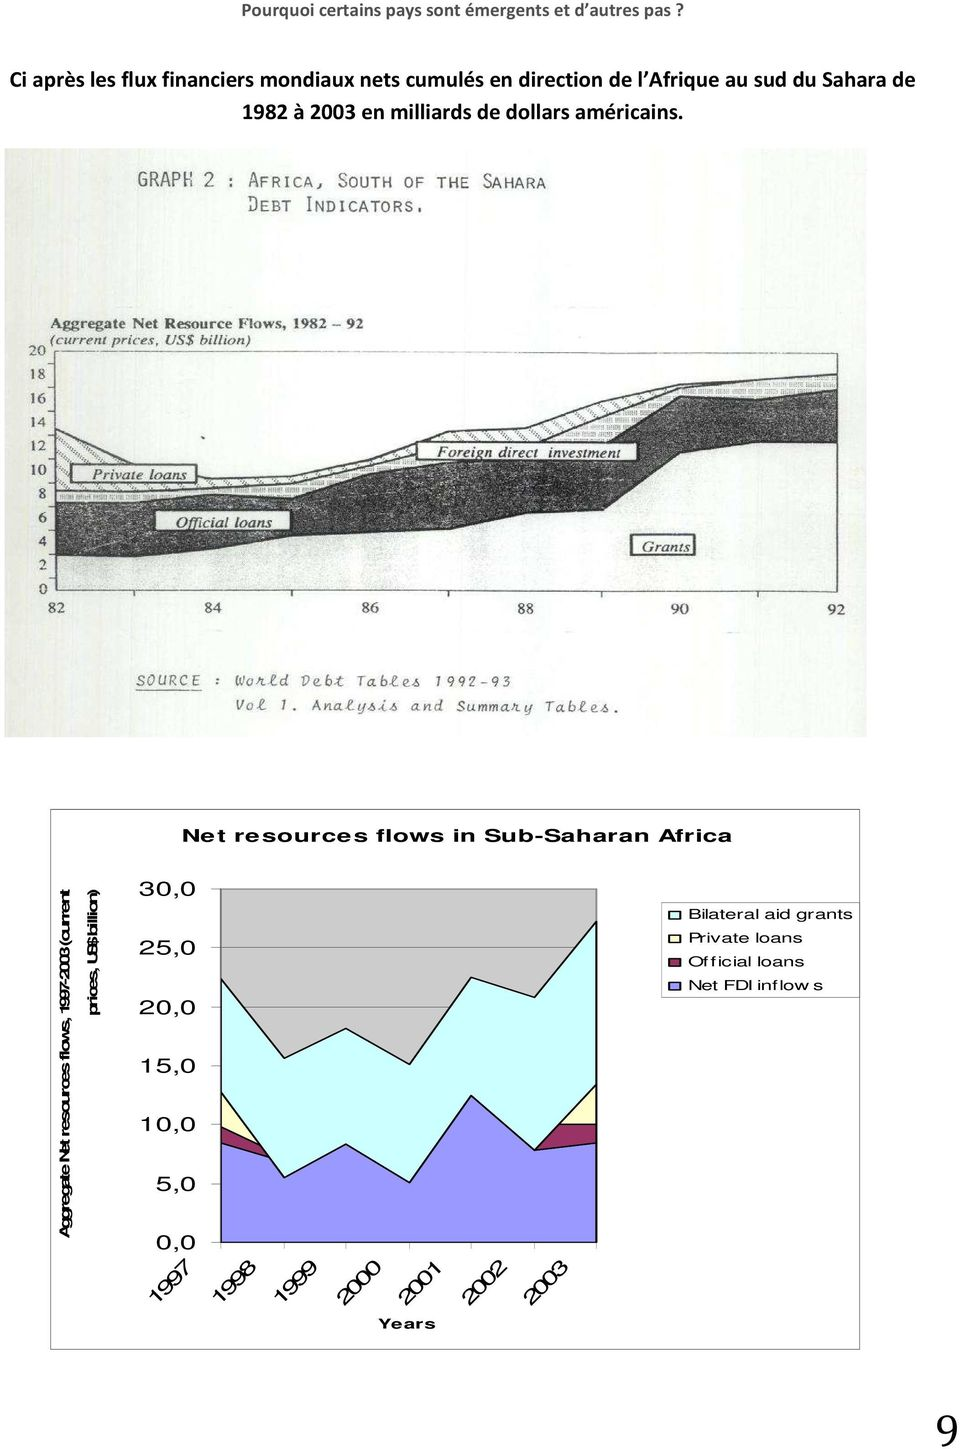 Net resources flows in Sub-Saharan Africa Aggregate Net resources flows, 1997-2003 (current prices,